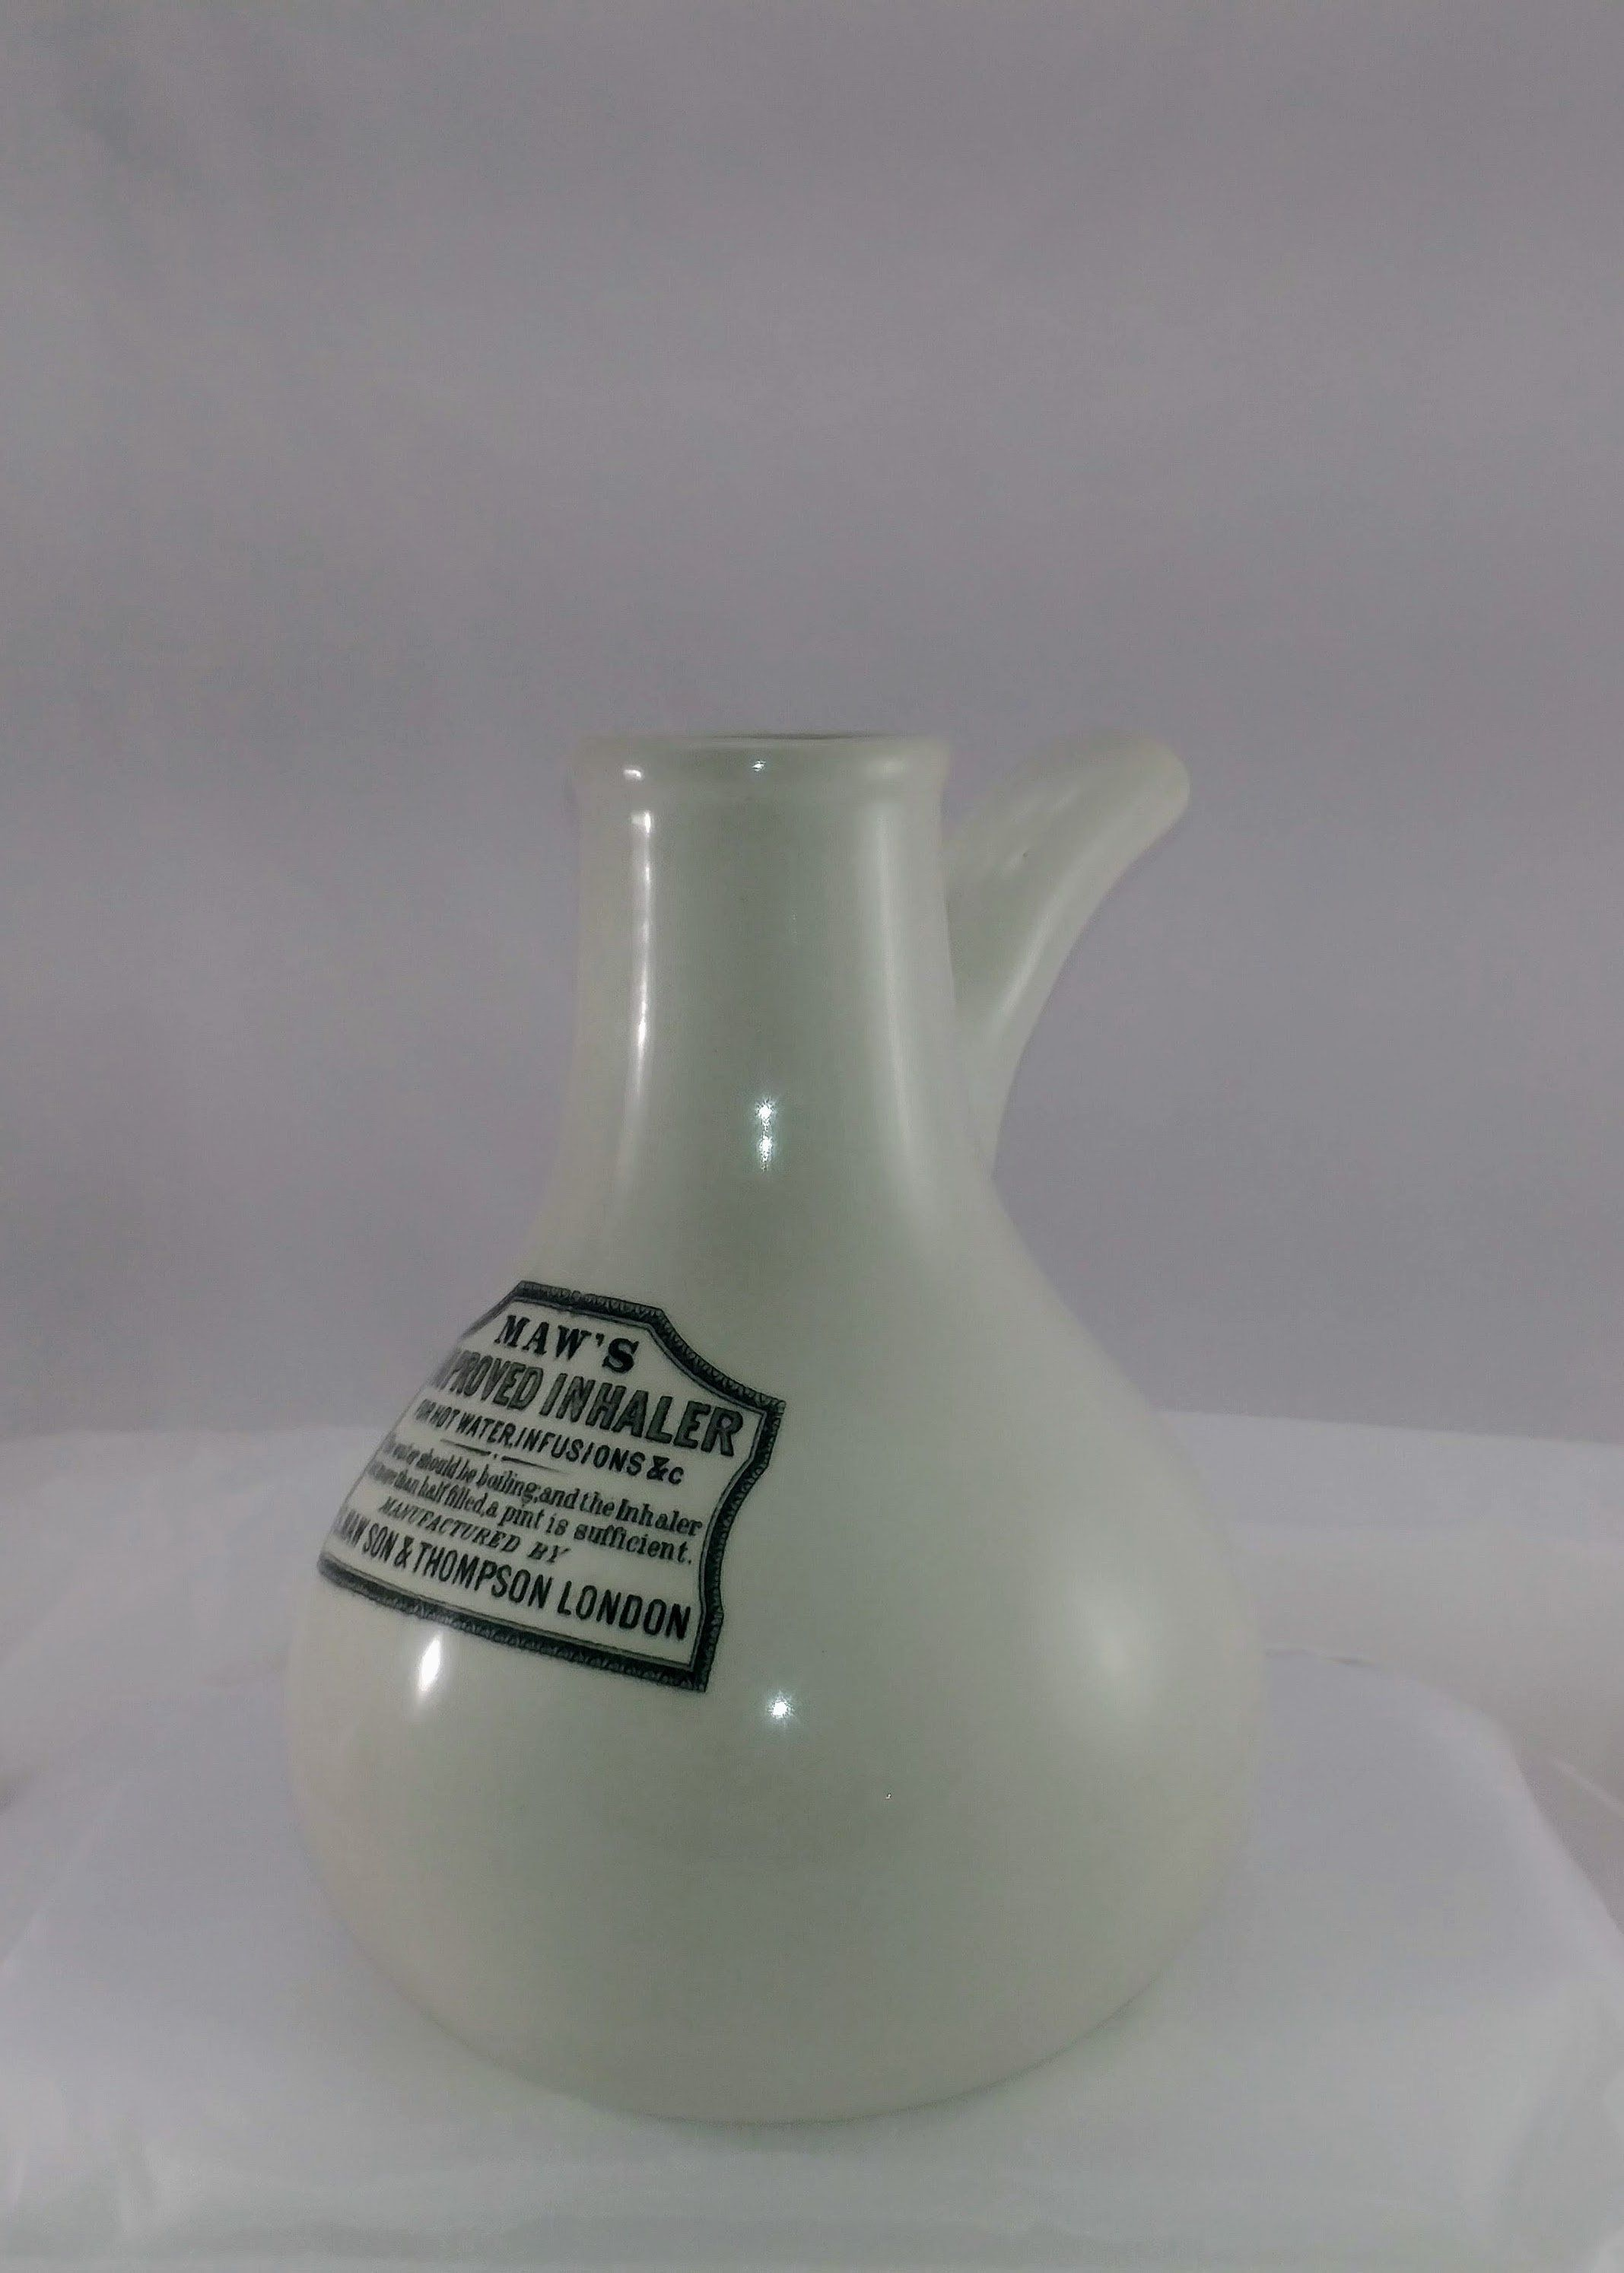 Vintage Apothecary English Ironstone Maw S Improved Inhaler